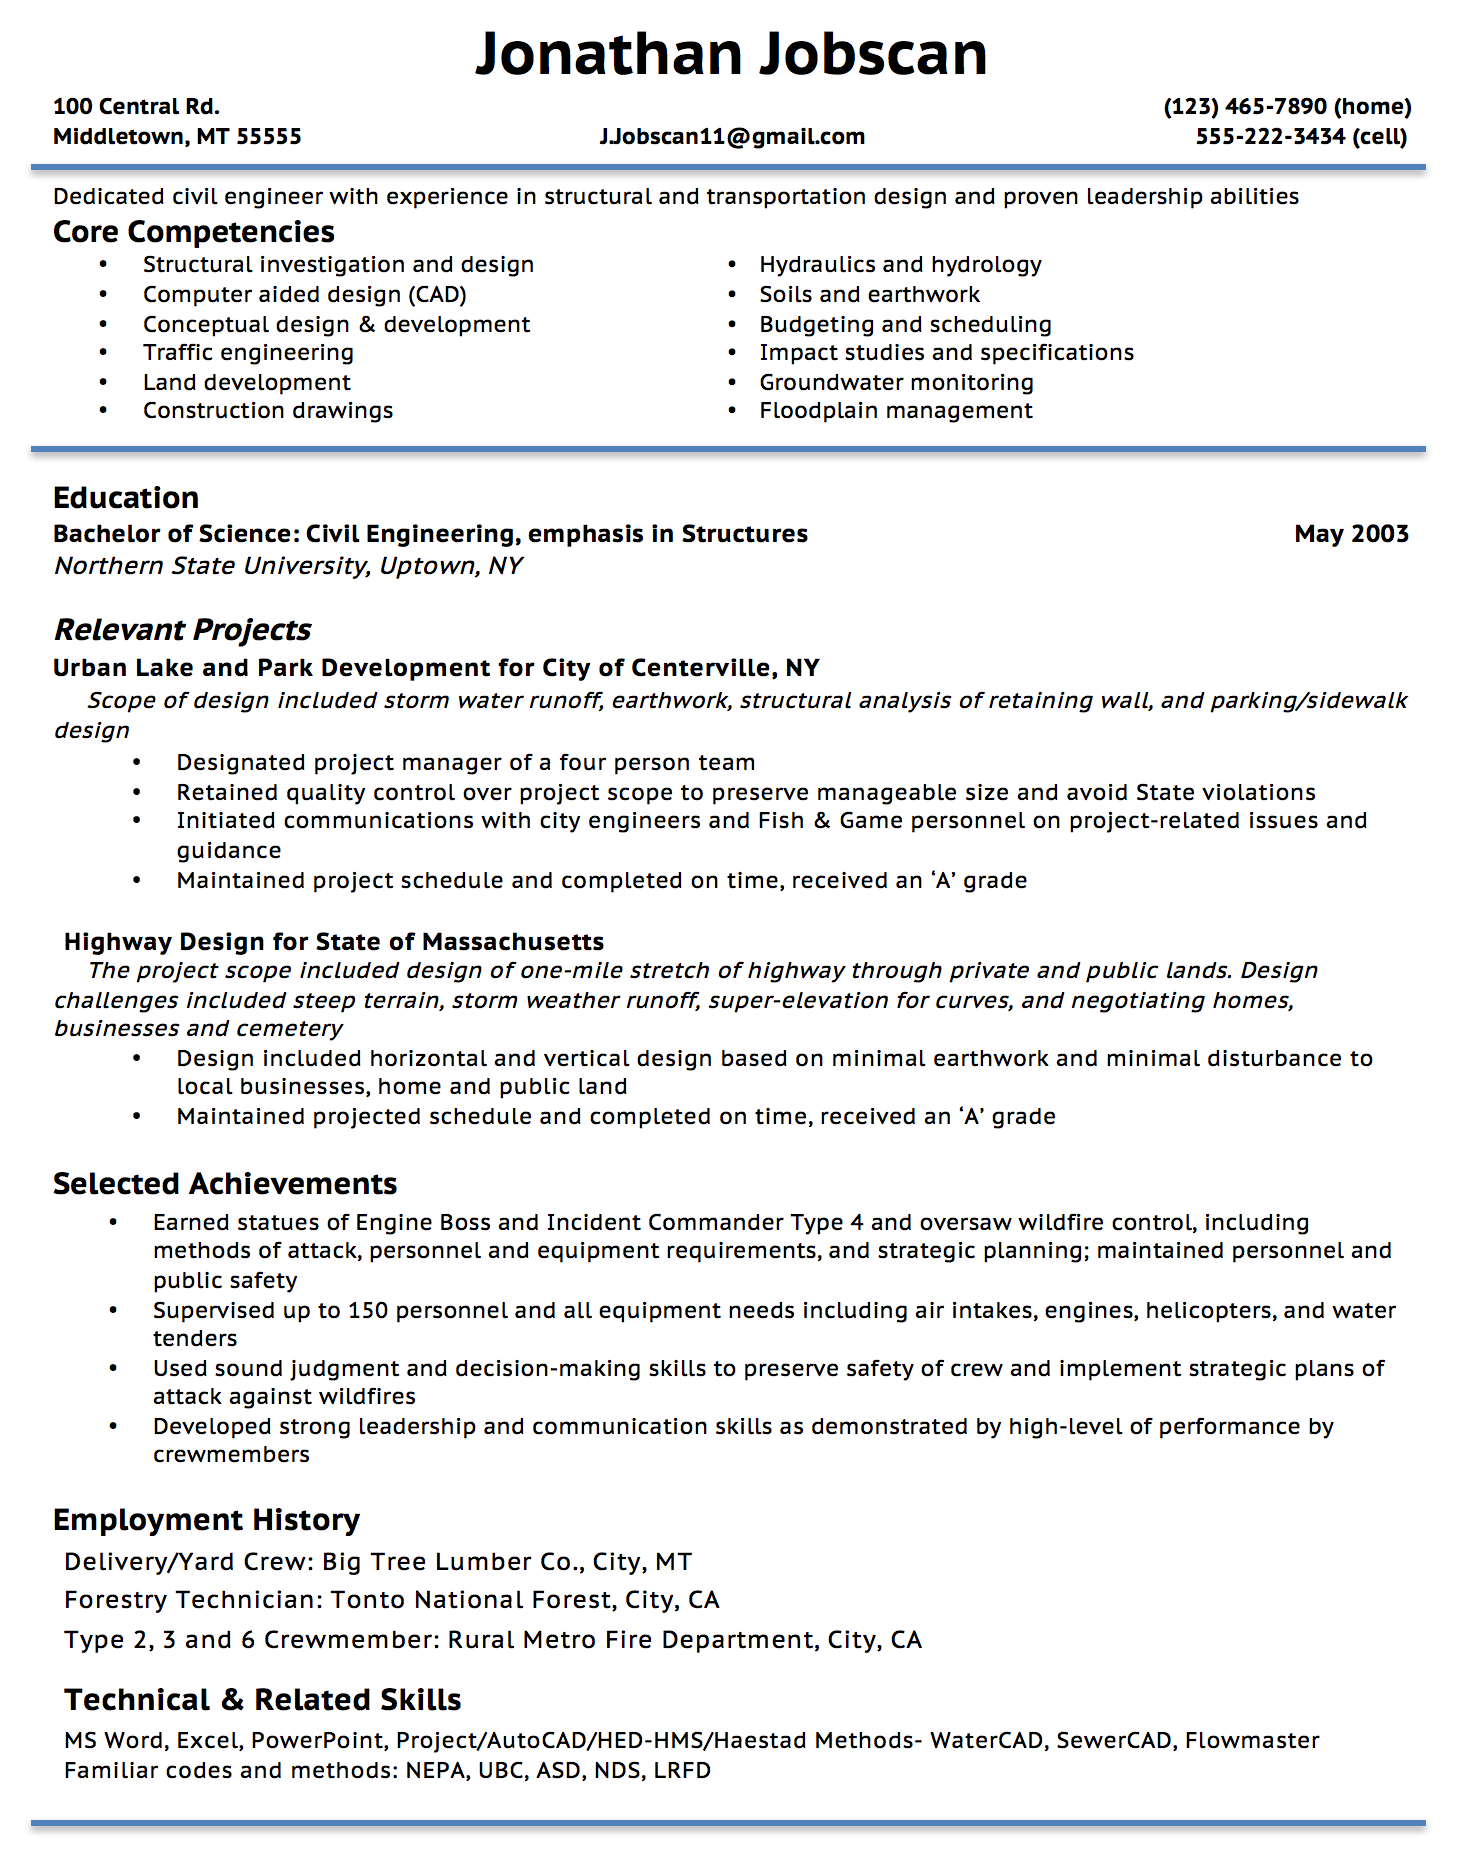 Picnictoimpeachus  Seductive Resume Writing Guide  Jobscan With Fair Example Of A Functional Resume Format With Breathtaking Star Format Resume Also Teacher Responsibilities Resume In Addition Medical Esthetician Resume And What To Write When Emailing A Resume As Well As Does My Resume Need An Objective Additionally Veterans Resume Builder From Jobscanco With Picnictoimpeachus  Fair Resume Writing Guide  Jobscan With Breathtaking Example Of A Functional Resume Format And Seductive Star Format Resume Also Teacher Responsibilities Resume In Addition Medical Esthetician Resume From Jobscanco